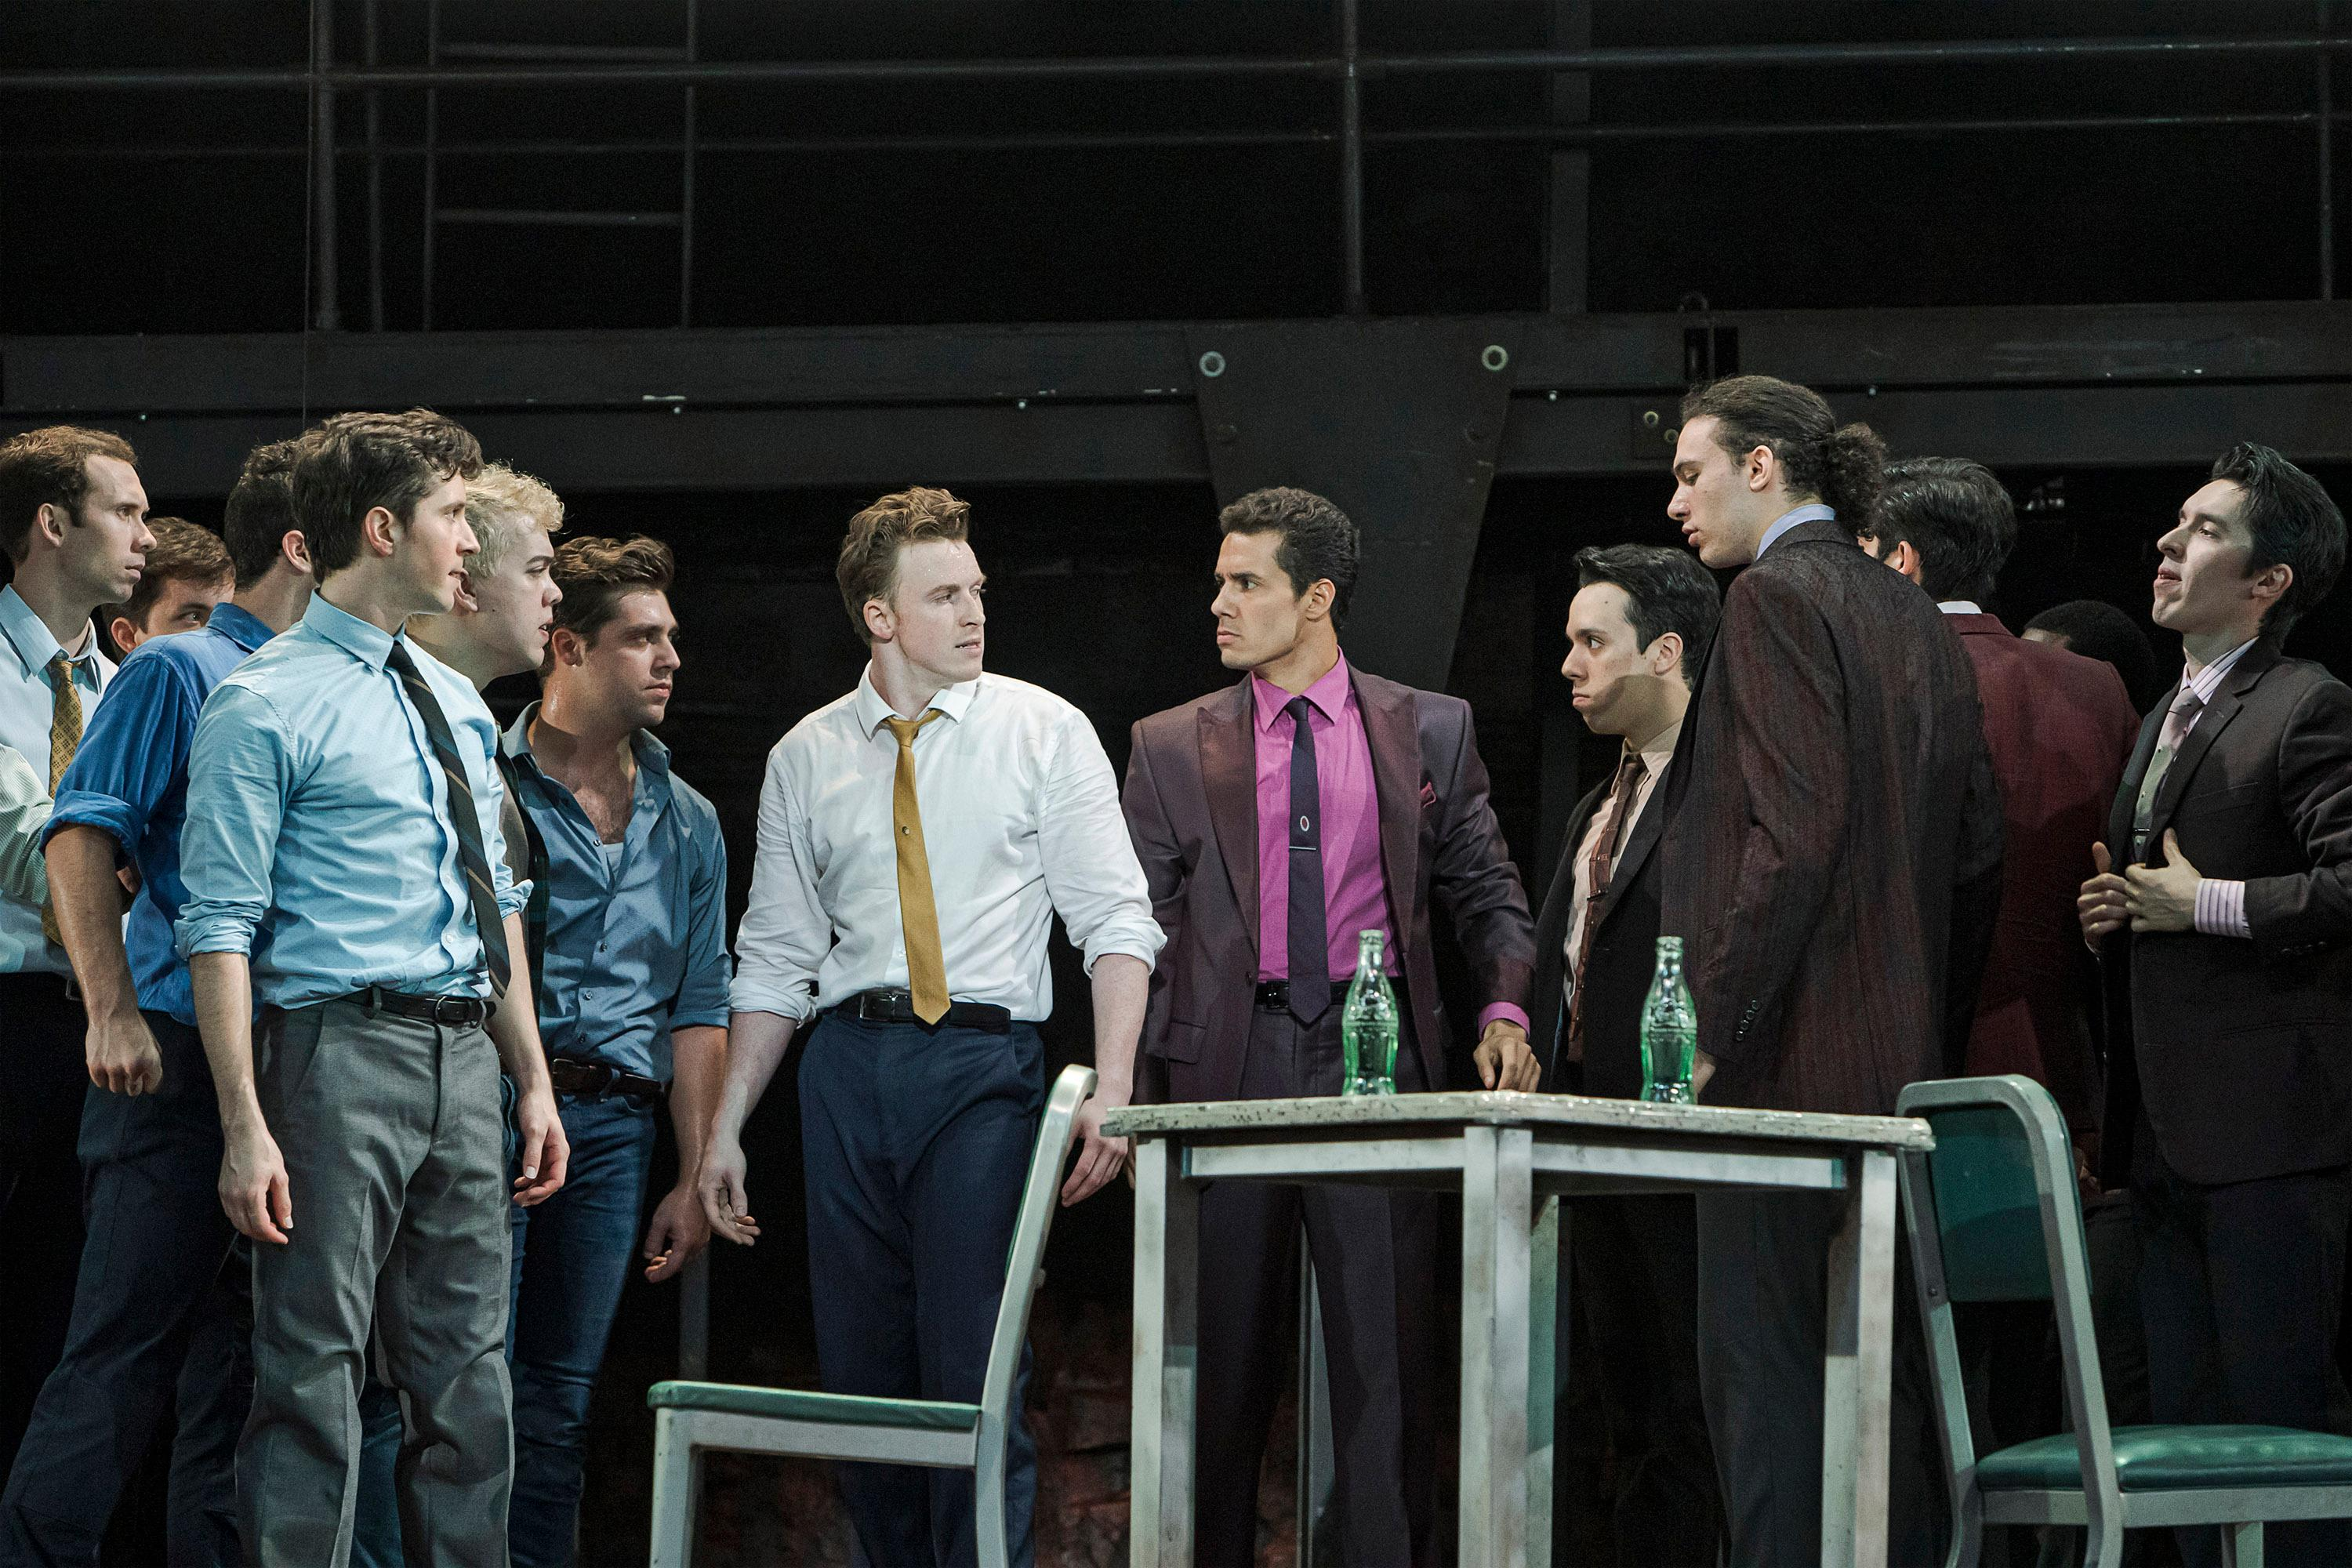 Dan Lusardi (left center) as Riff Alexander Gil Cruz (right center) as Bernardo and the cast of West Side Story (Photo Credit Tracy Martin)